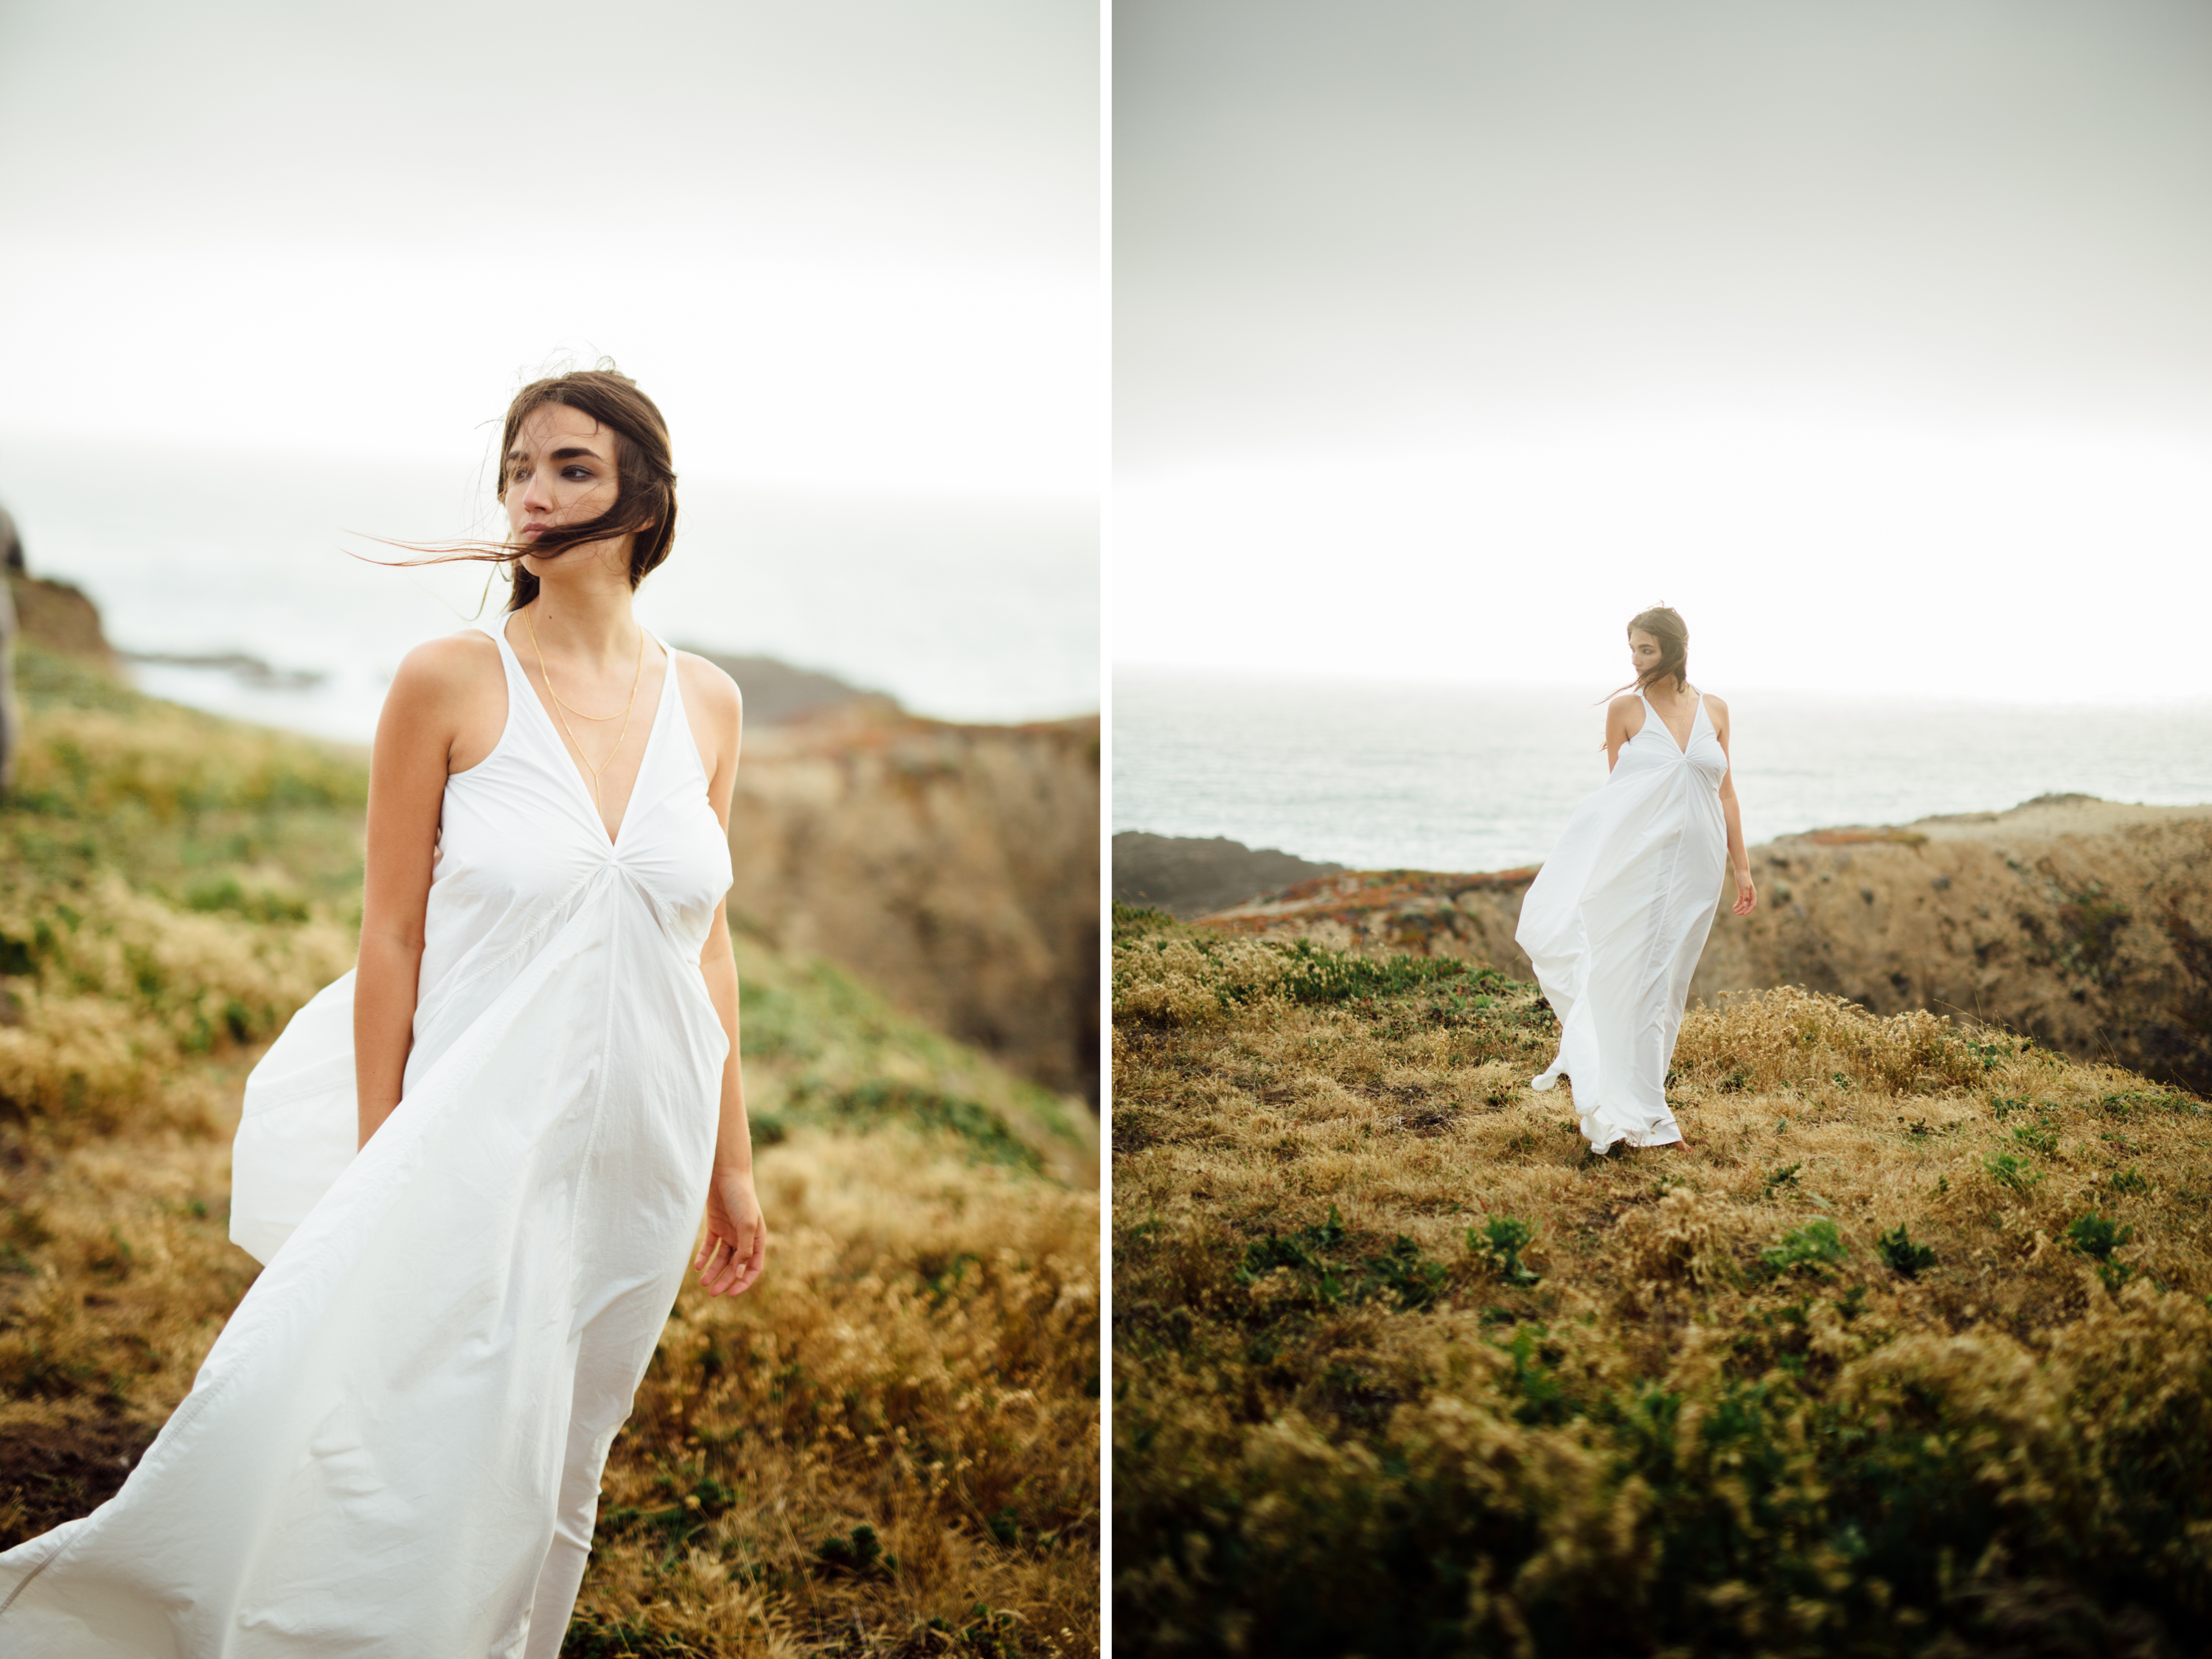 California-Wedding-Photography-by-Artur-Zaitsev-15